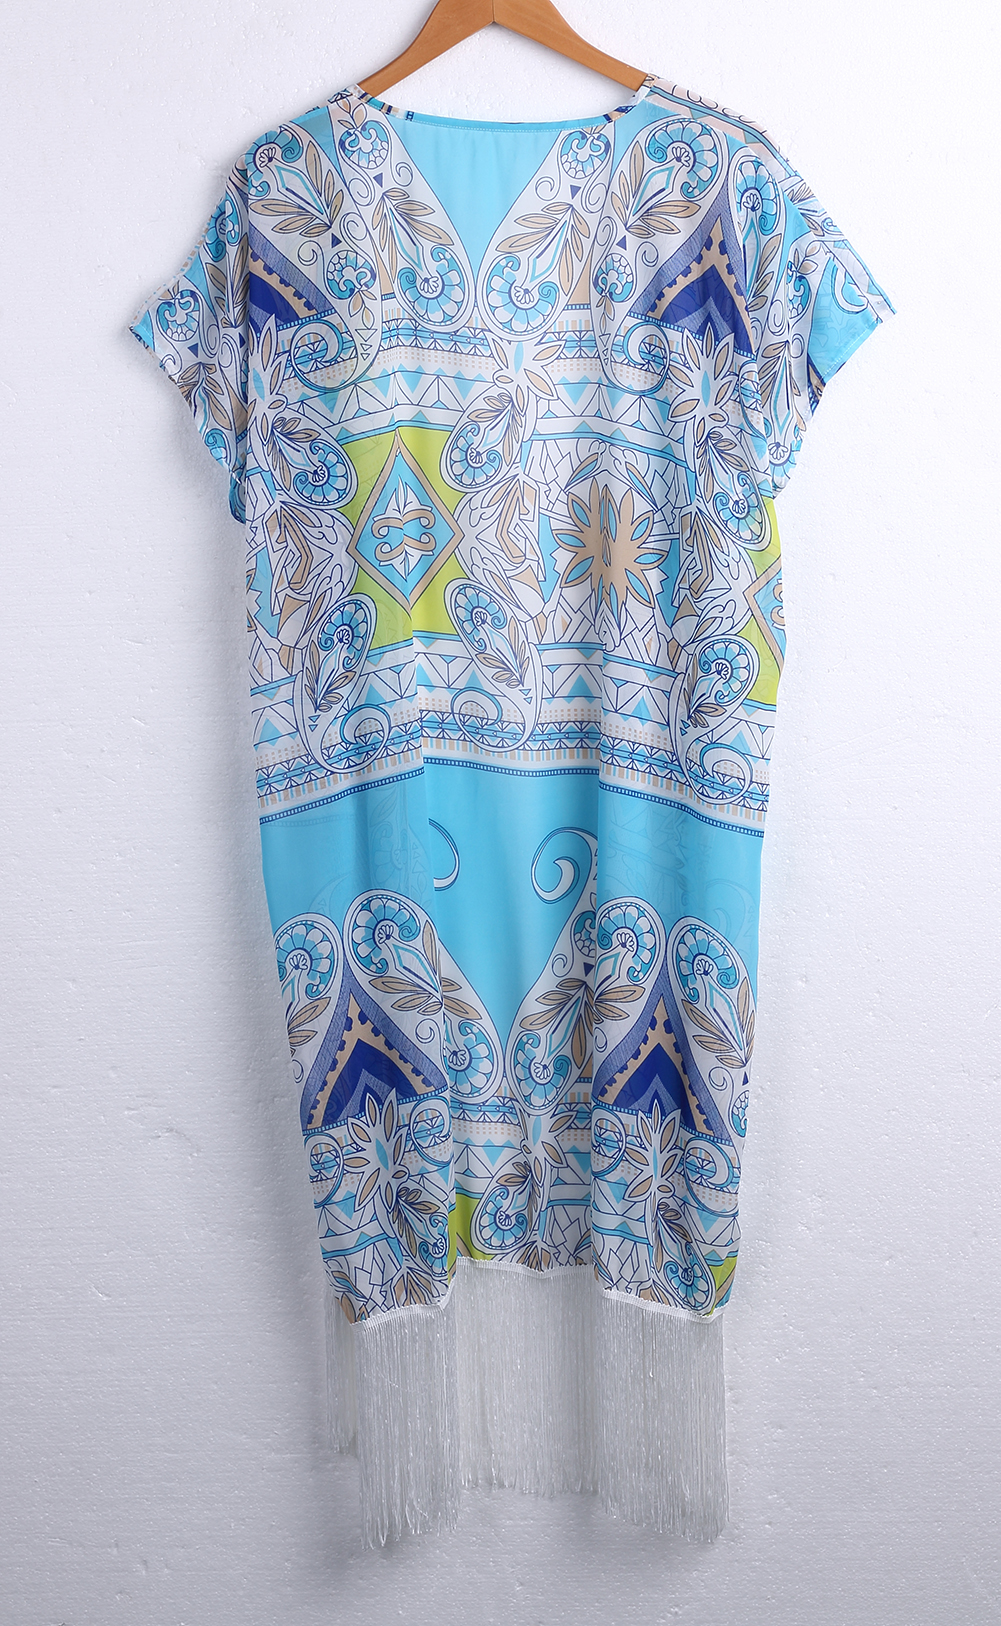 4d16e46e0791e Women Summer Bikini Chiffon Cover Up Beach Dress Brazilian Blue Tassels  Monokini Bikini Swimwear Bathing Cover Ups Print -in Cover-Ups from Sports  ...